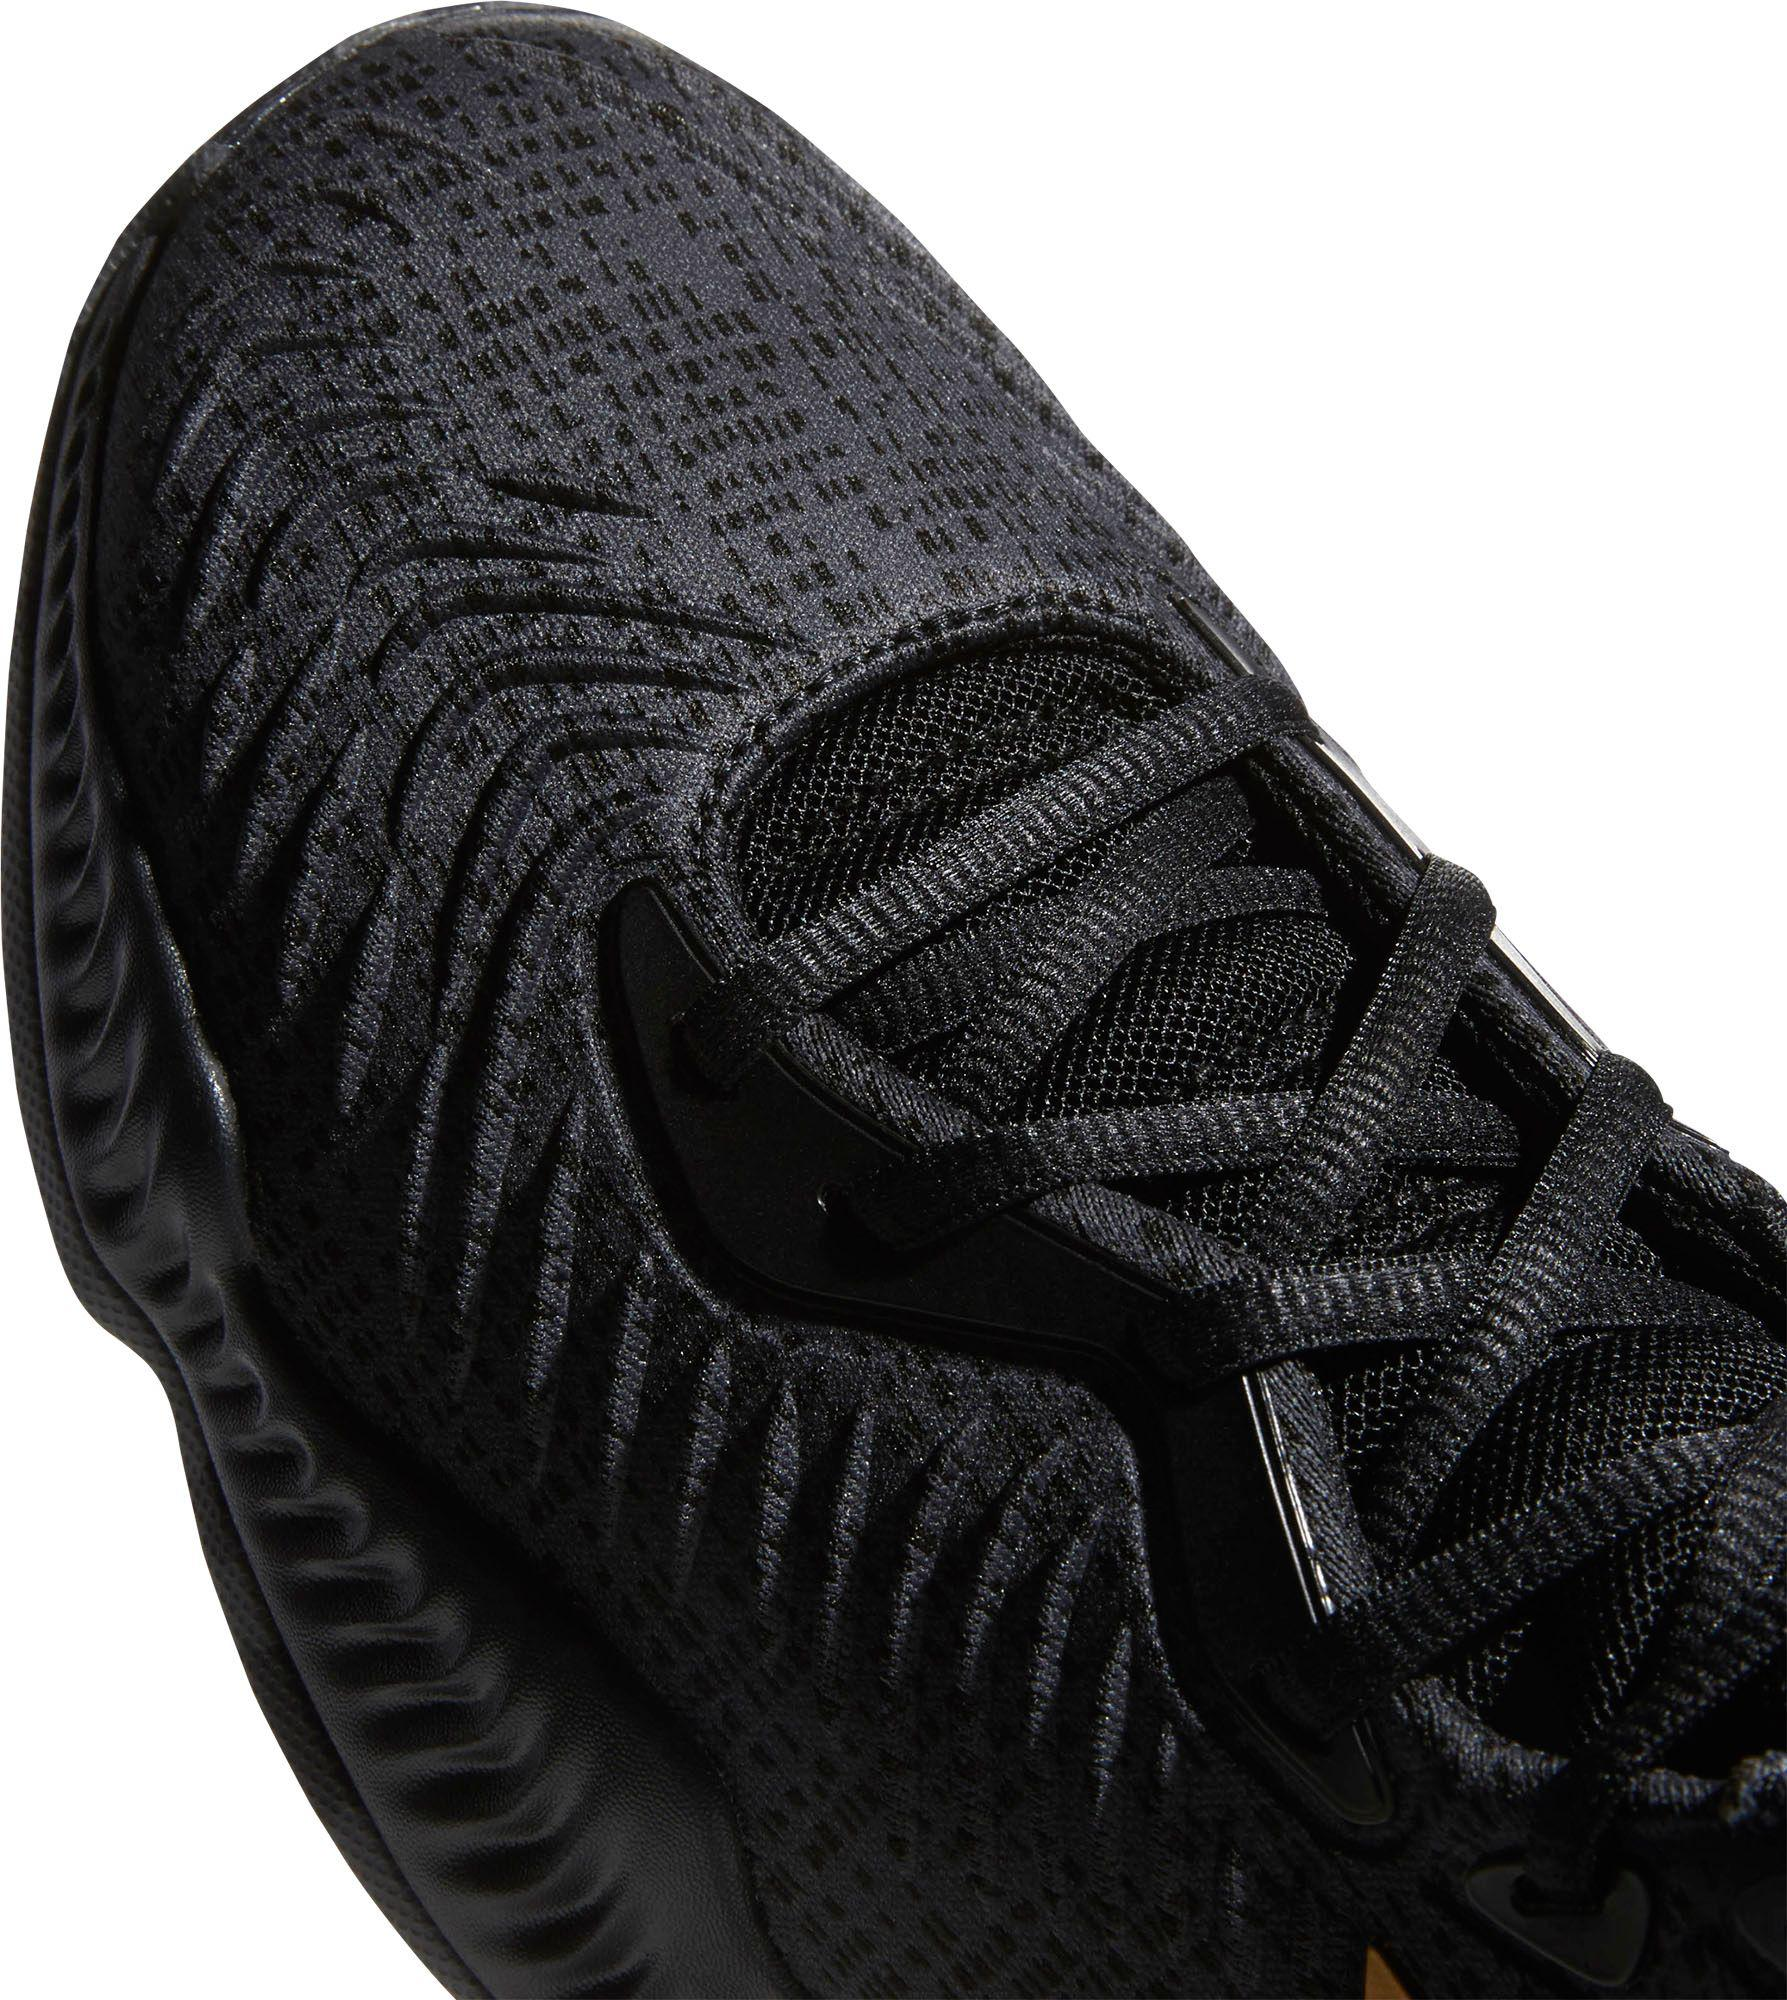 6110c1568e08 Lyst Adidas Mad Bounce 2018 Basketball Shoes In Black For Men